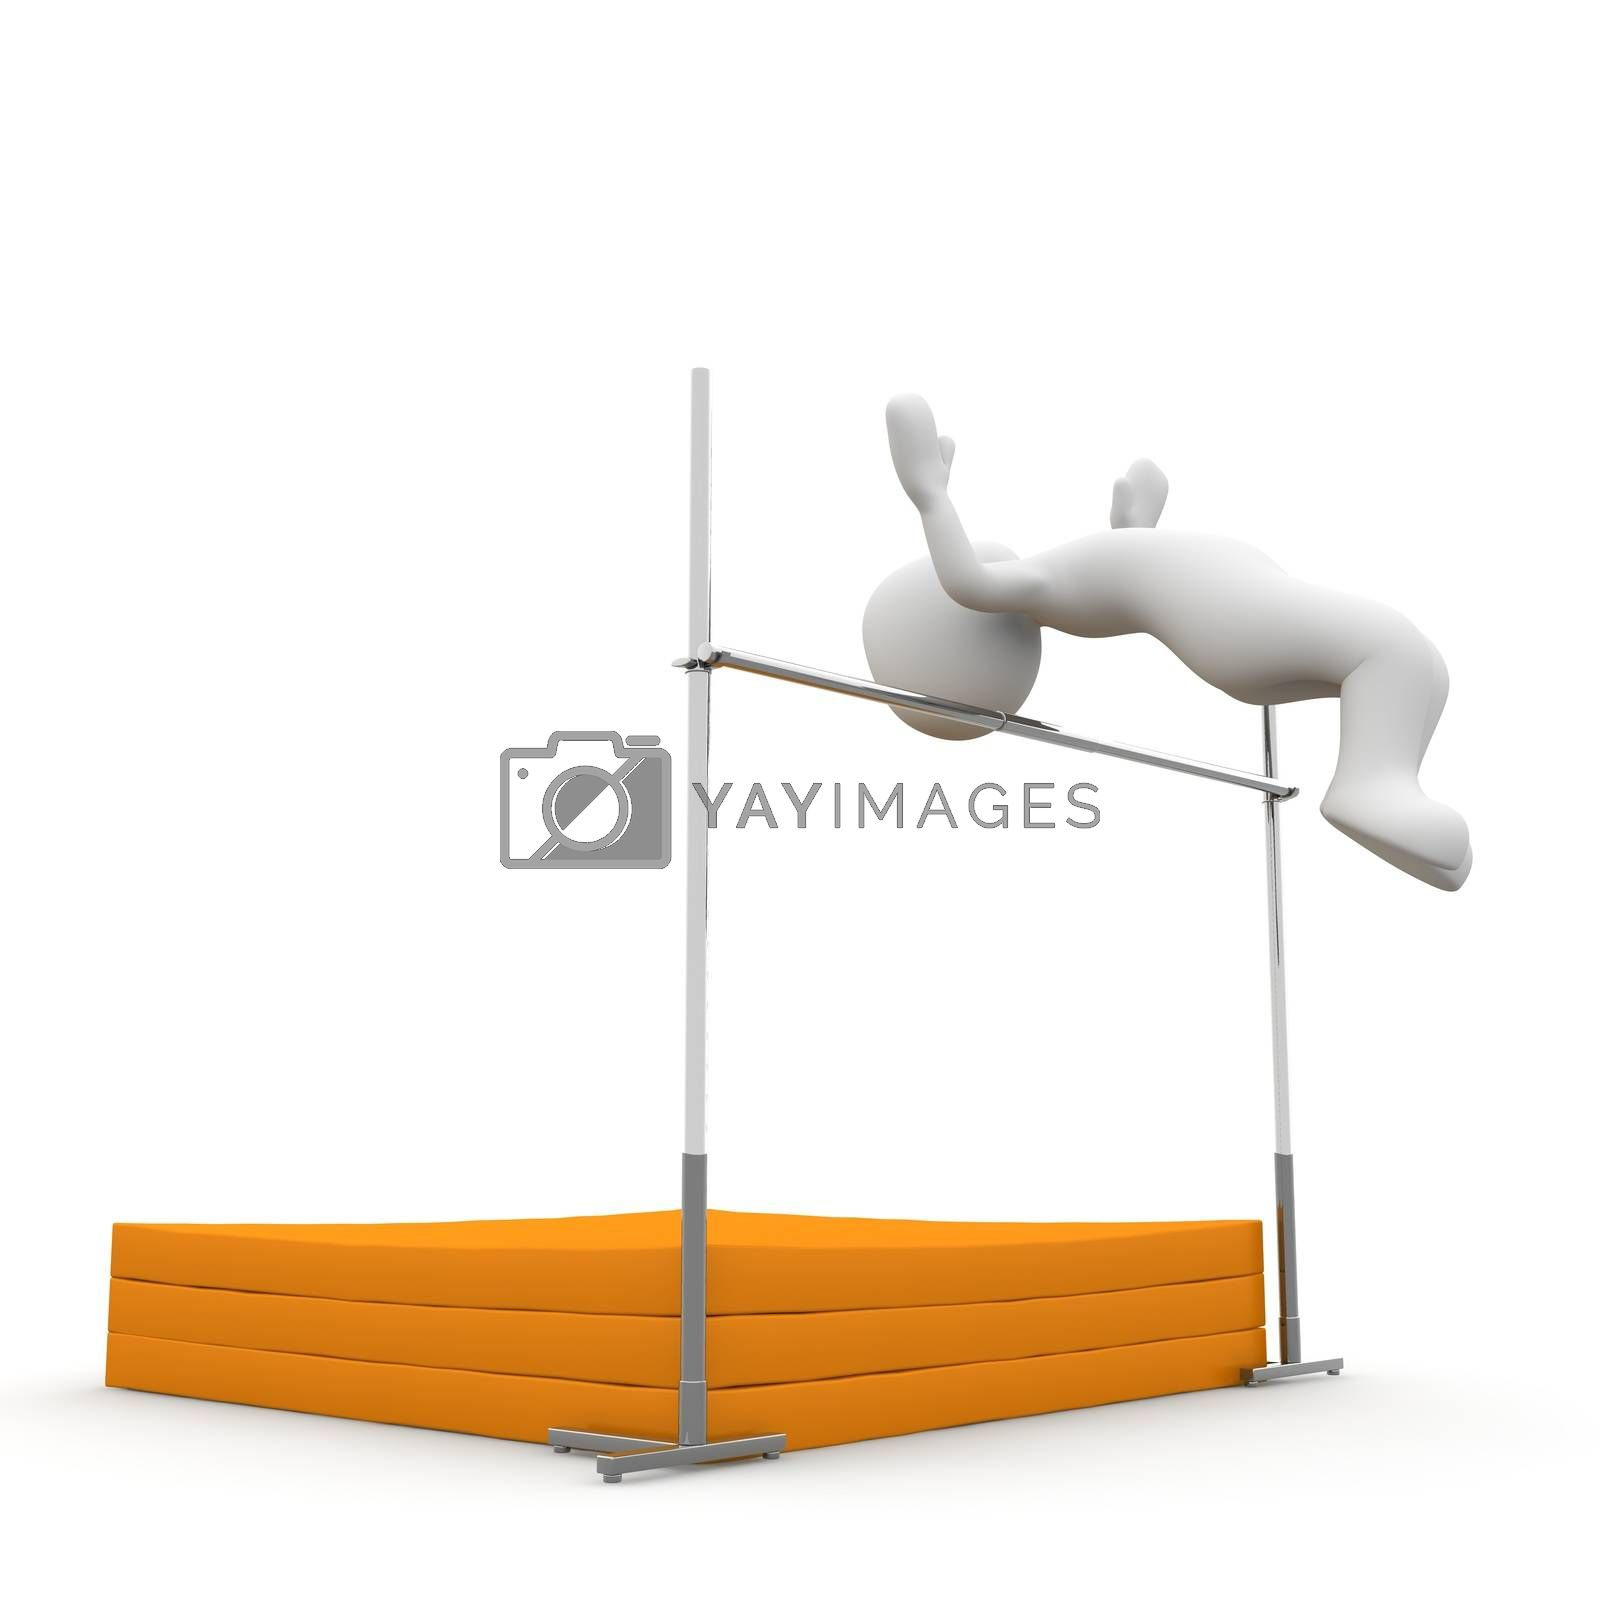 Royalty free image of Jumping 1 by 3DAgentur